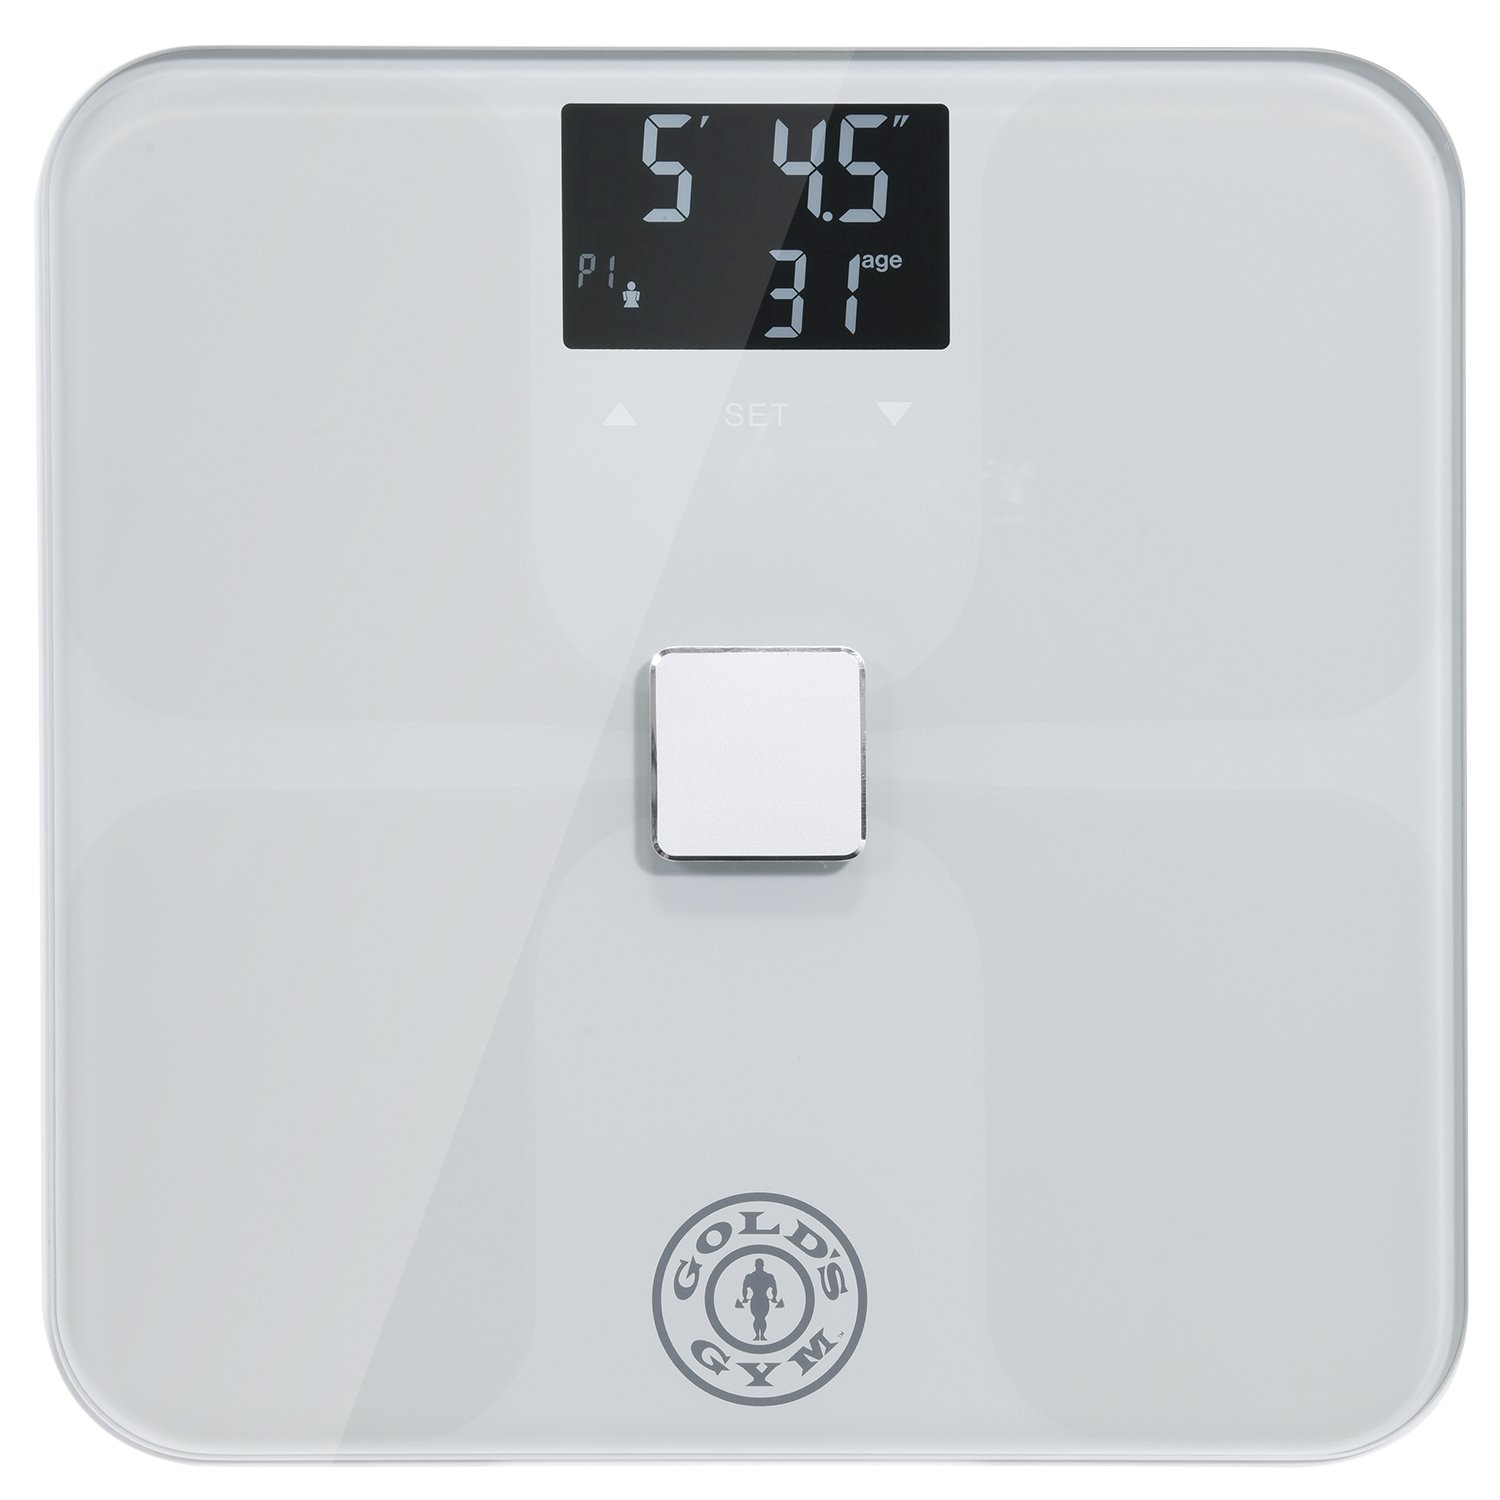 Gold's Gym Smart Biometric Digital Body Composition Fitness Bathroom Scale Measures Weight, BMI, Body Fat, Water and Muscle Mass, Kcal/BMR, Bone Mass - Auto Memory for Up to 9 Users - Silver